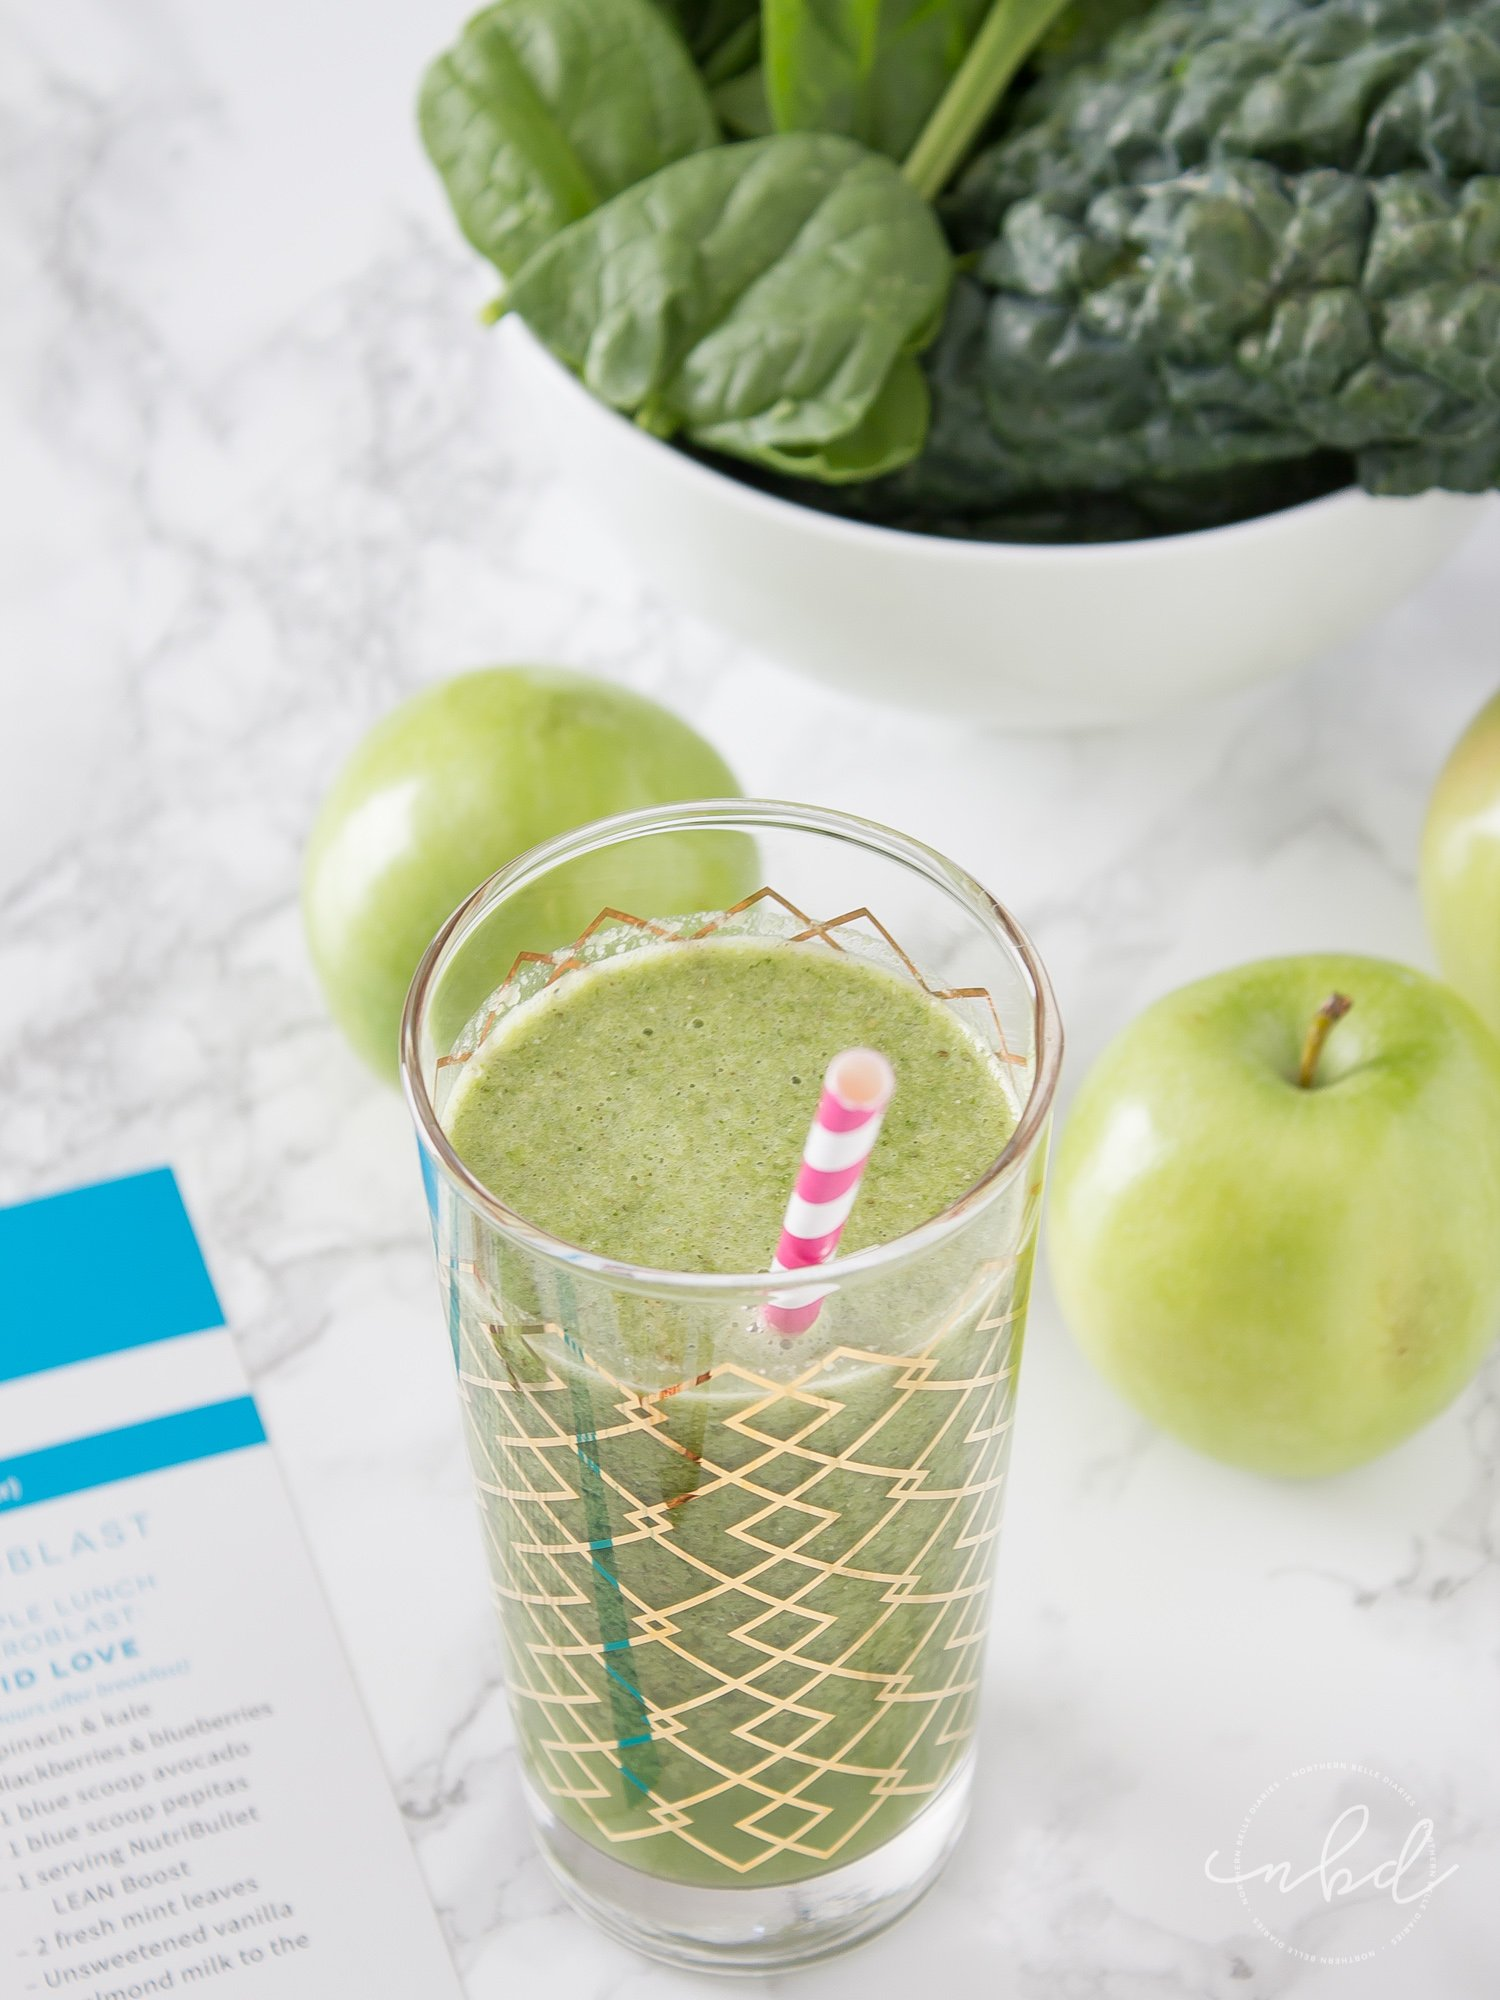 NutriBullet LEAN system 7-Day transformation smoothie mix complete